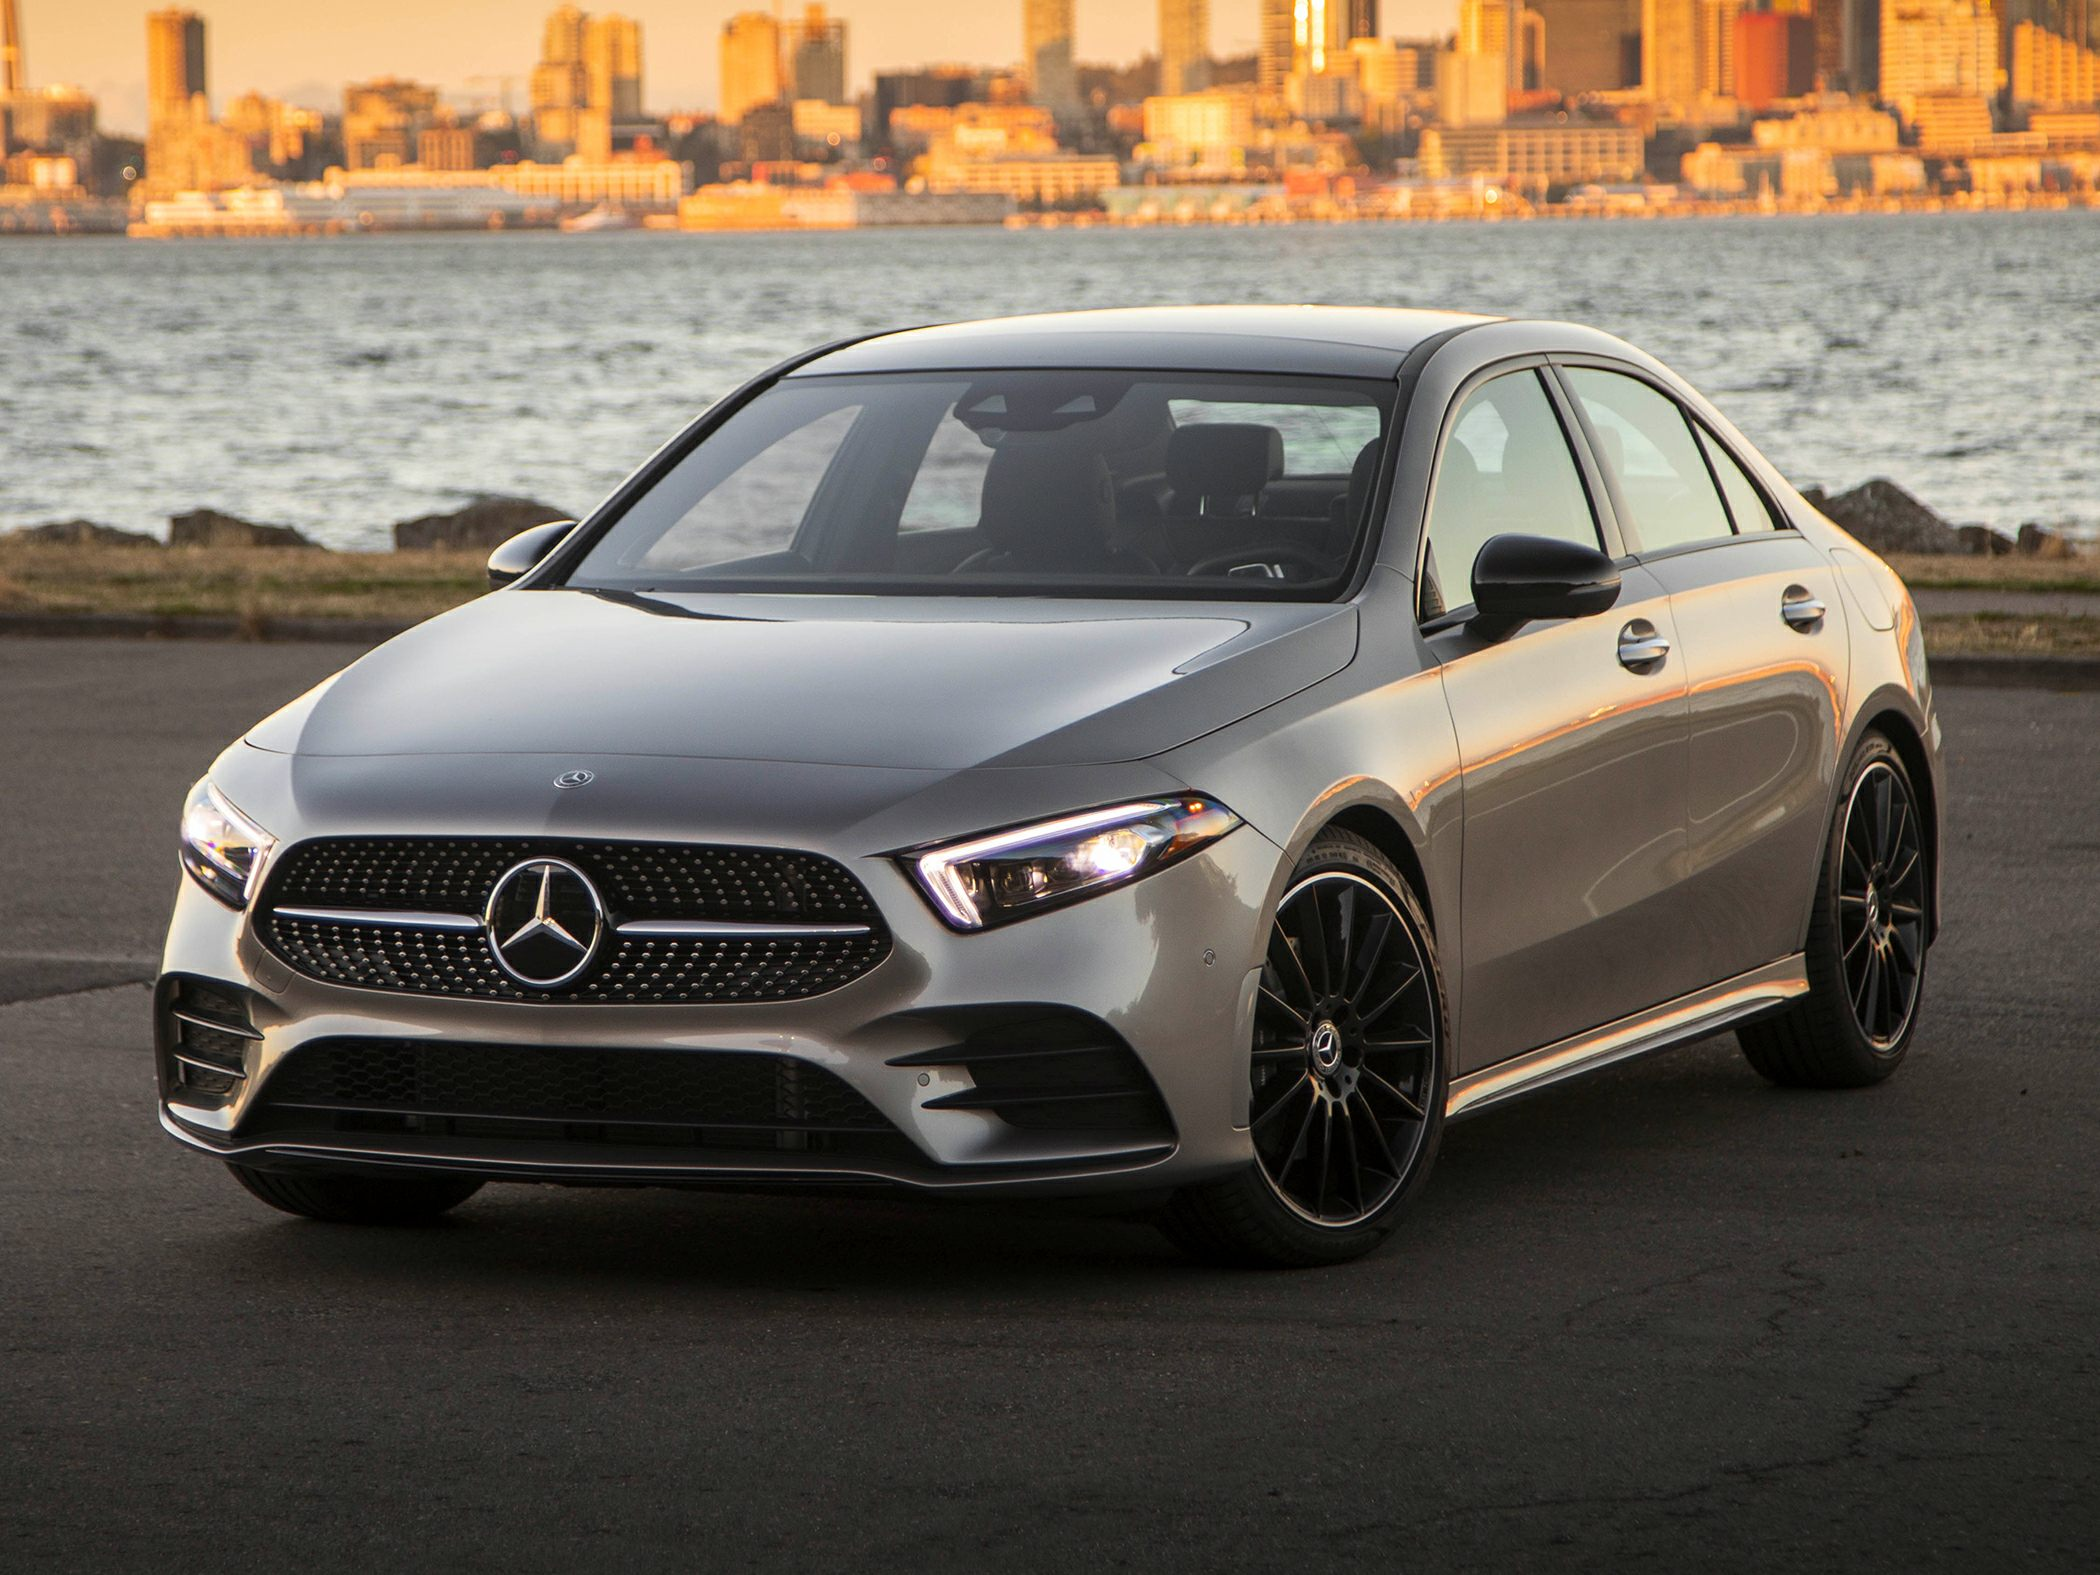 2020 Mercedes-Benz A-Class Specs and Prices